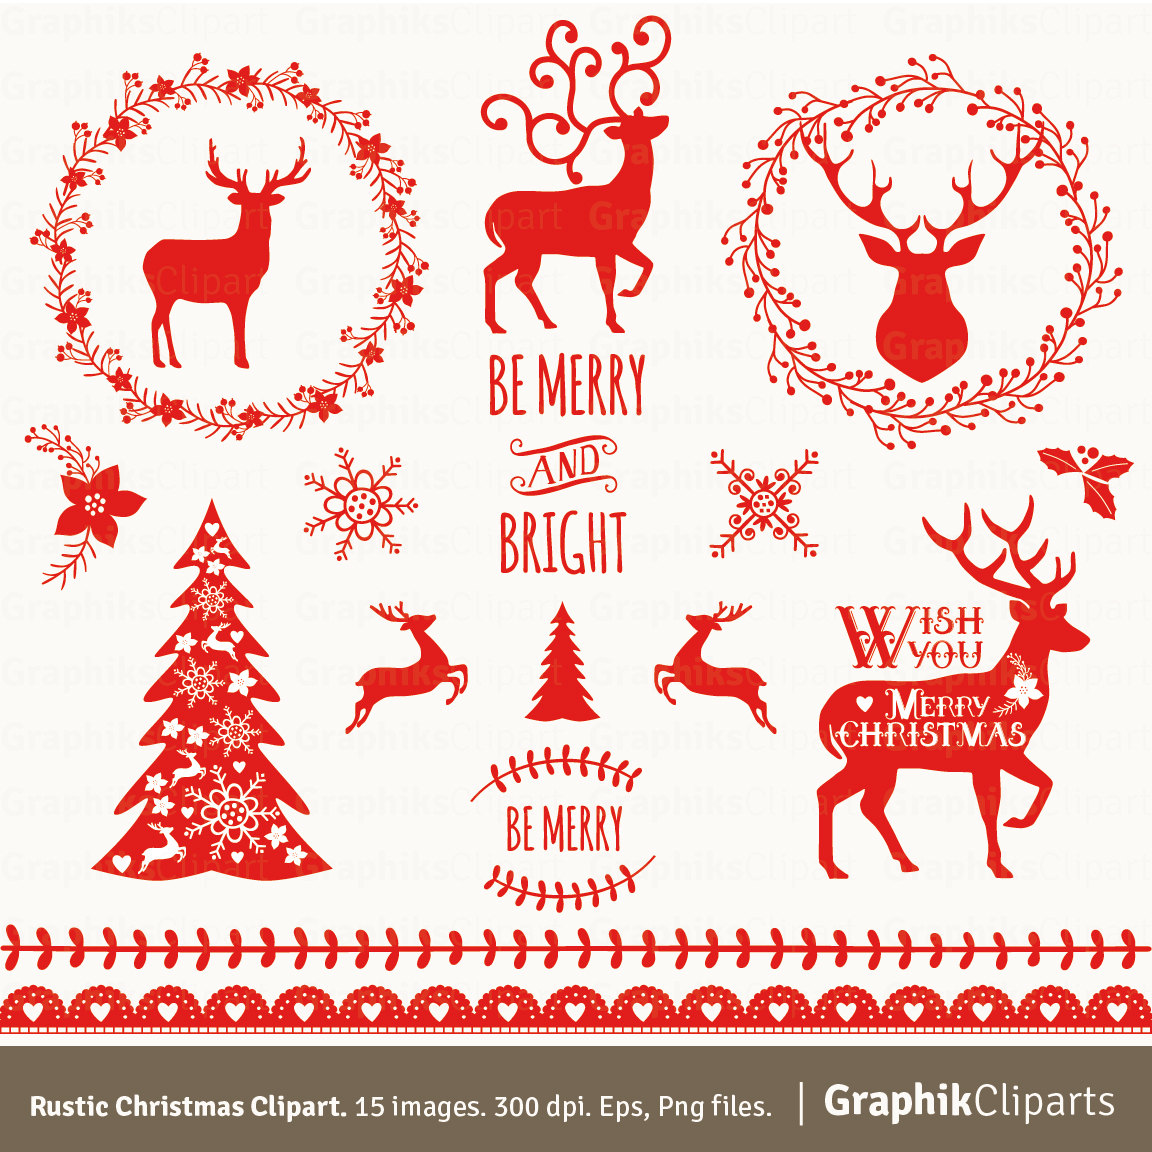 Free Rustic Cliparts, Download Free Clip Art, Free Clip Art on.